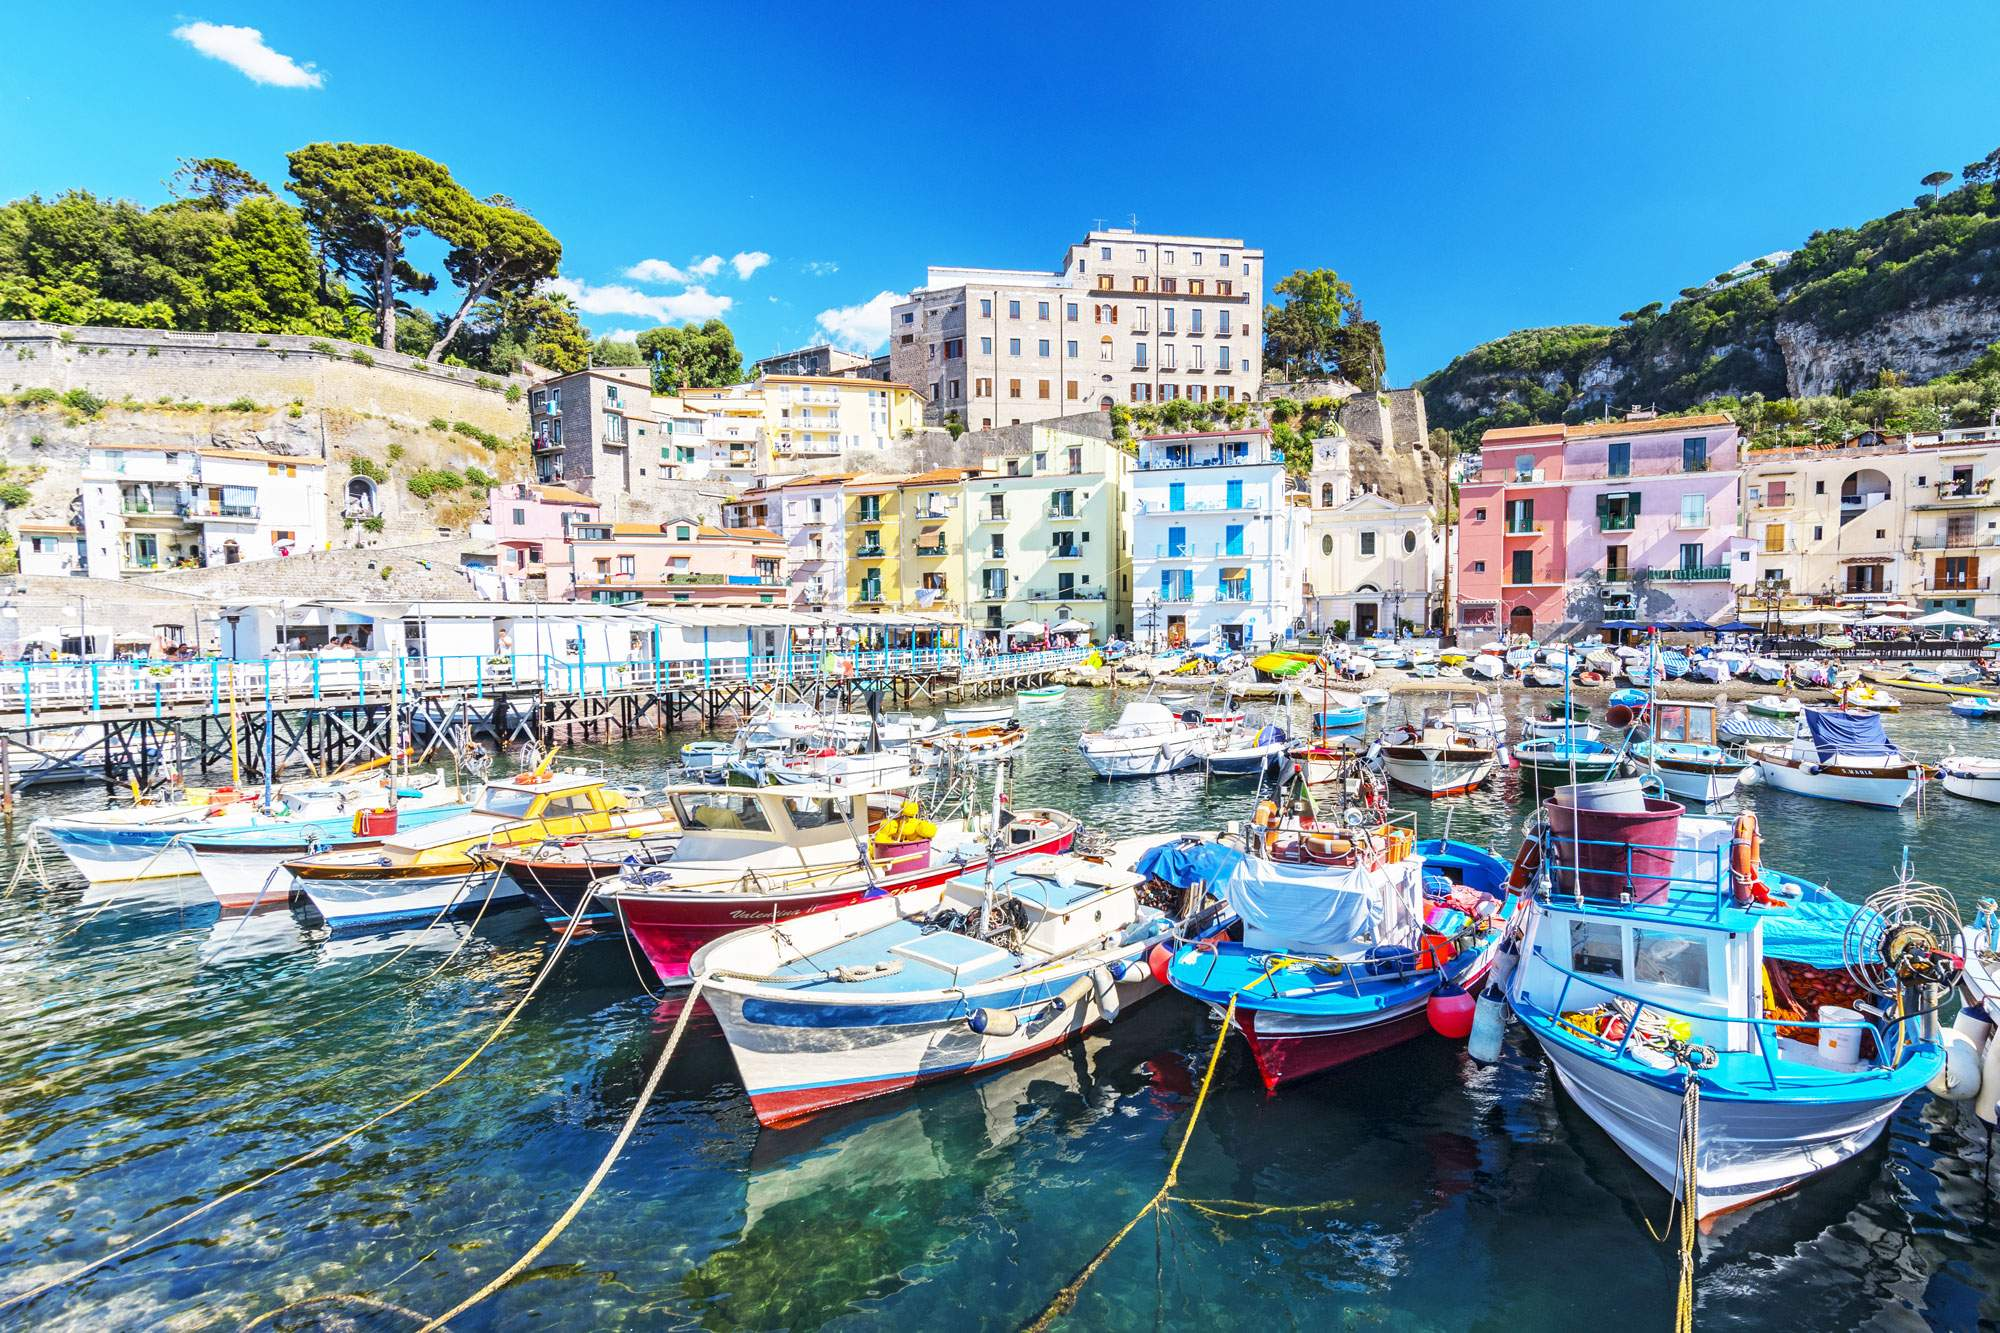 sorrento-amalfi-coast-italy-town-boats-travel